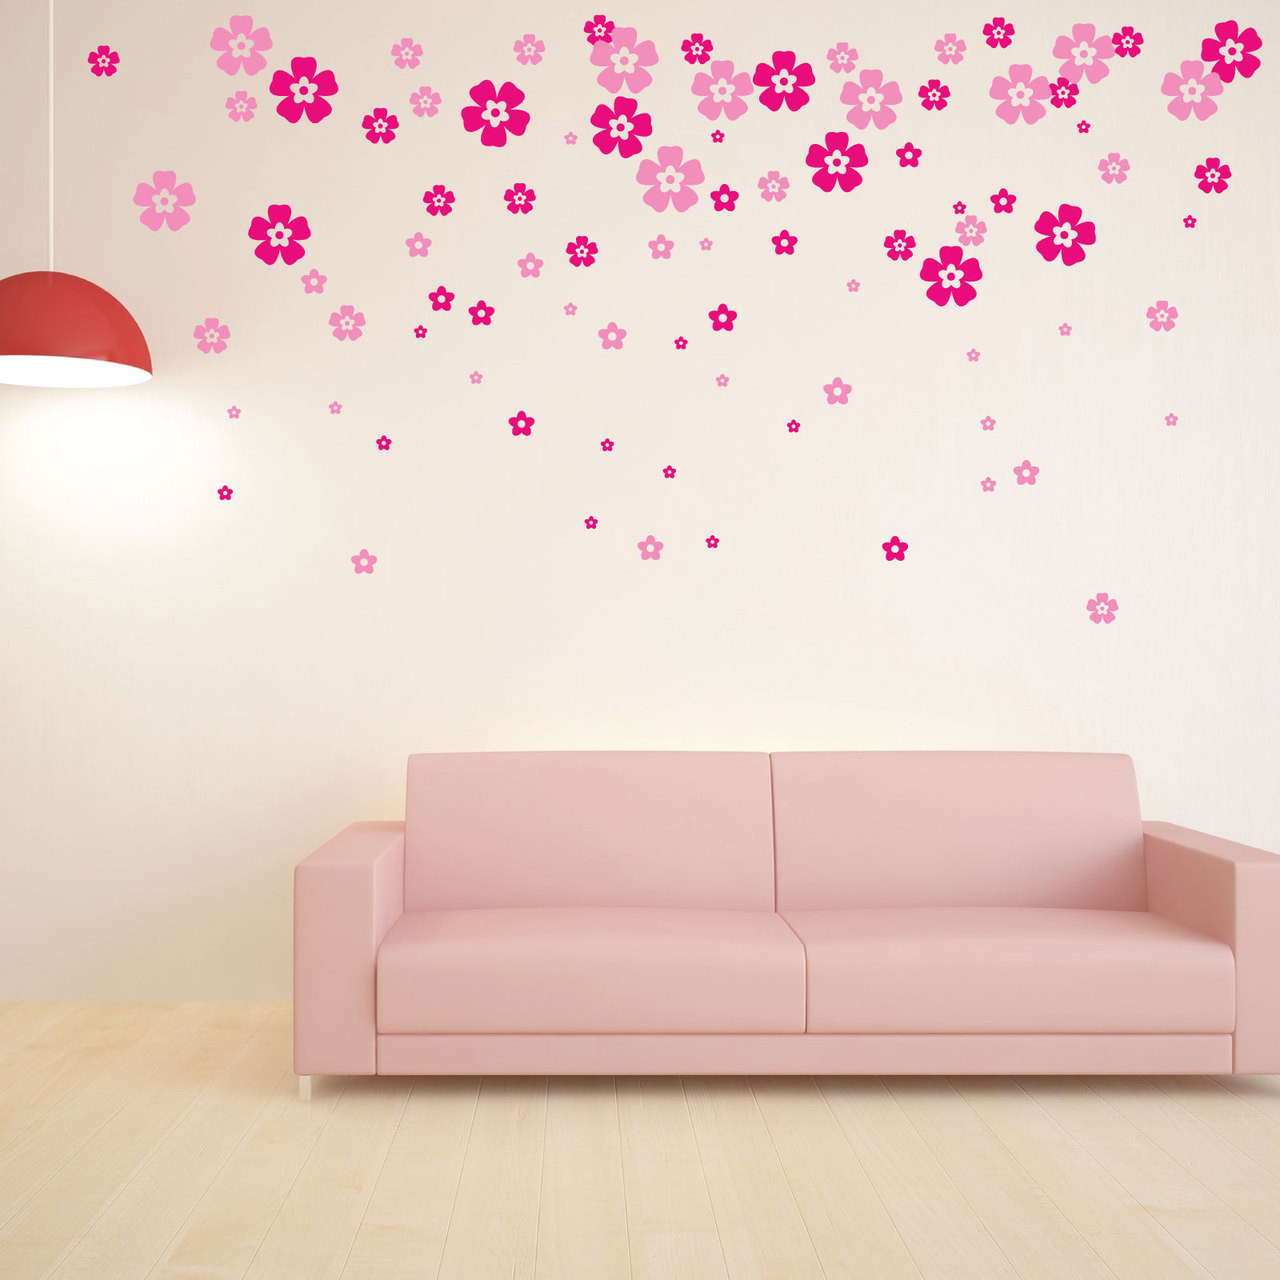 40 X Small Flower Wall Stickers 8913 Stickers Wall